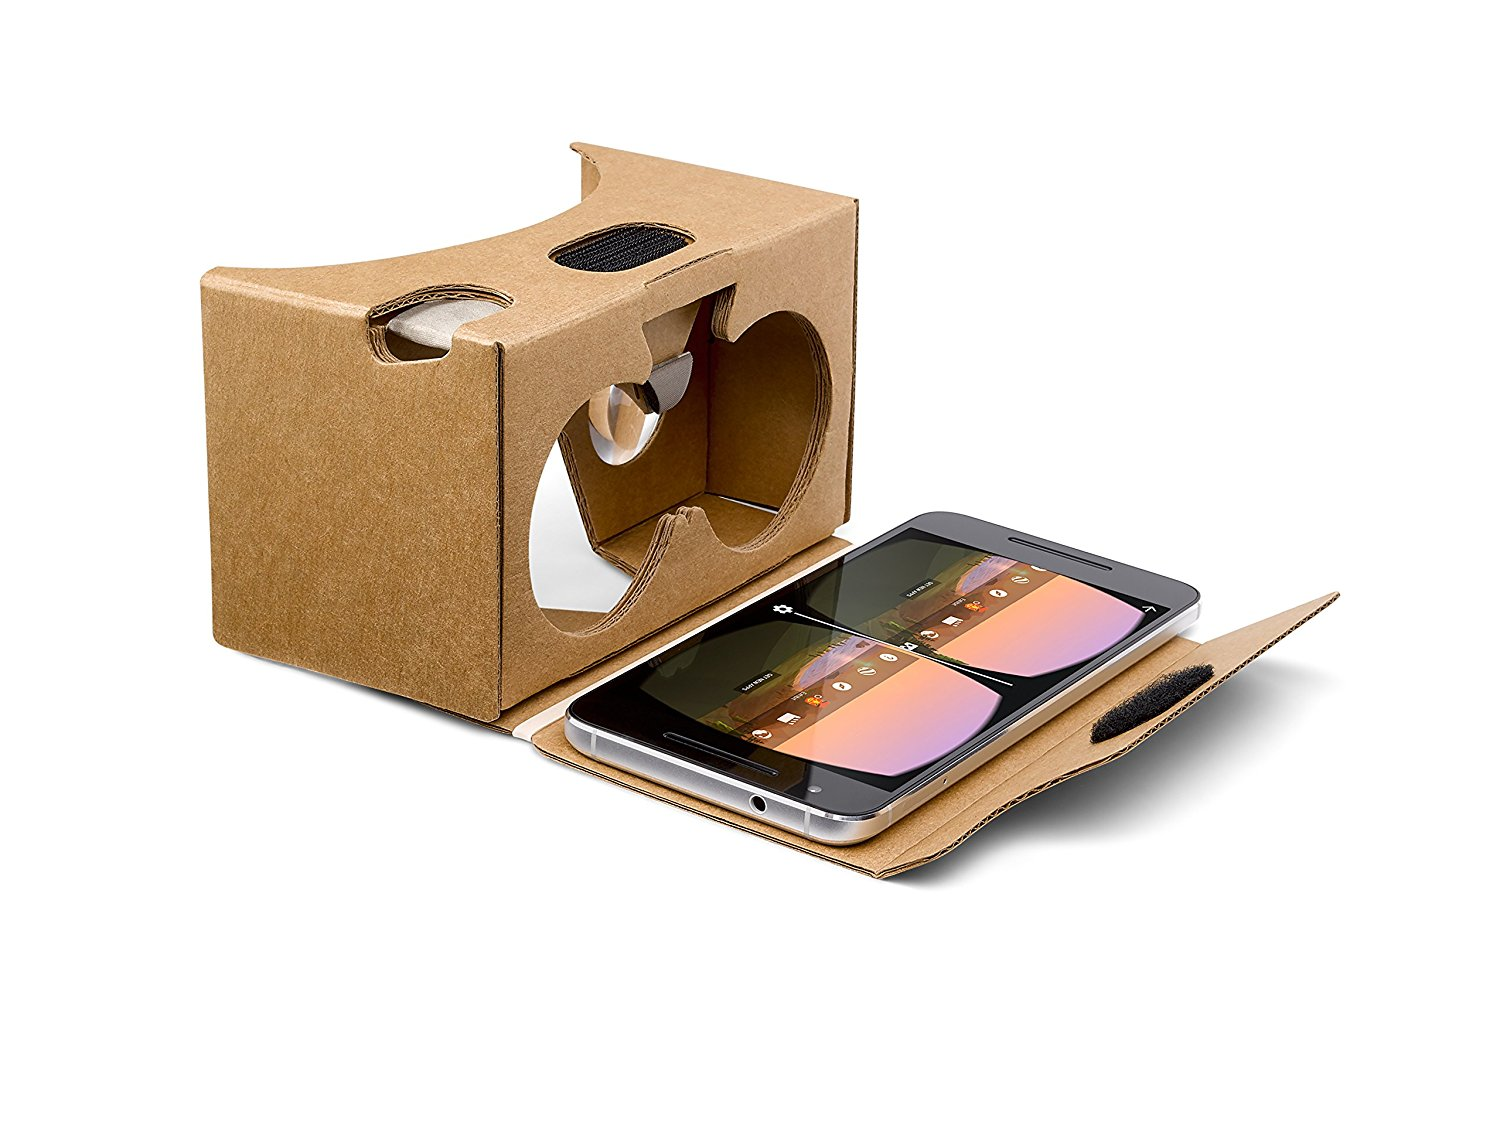 Google Cardboard With Phone